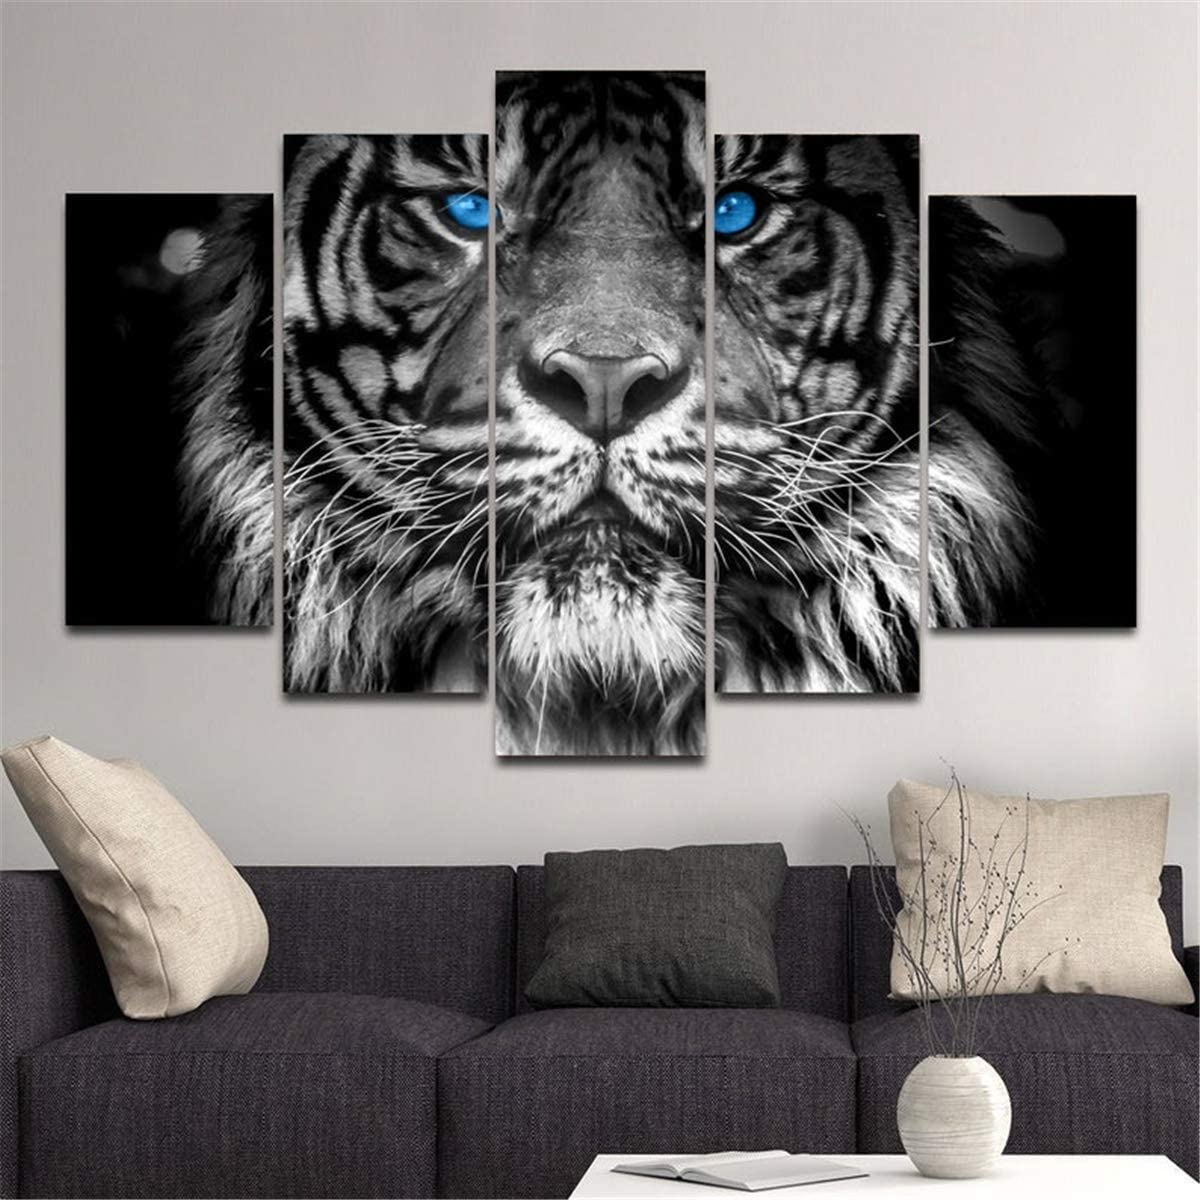 Amazon Com Jesc 5 Panels Canvas Wall Art Blue Eyed Tiger Animal Painting Black White Poster For Decor Men Living Room Lover Gift Bedroom Stretched And Framed Ready To Hang